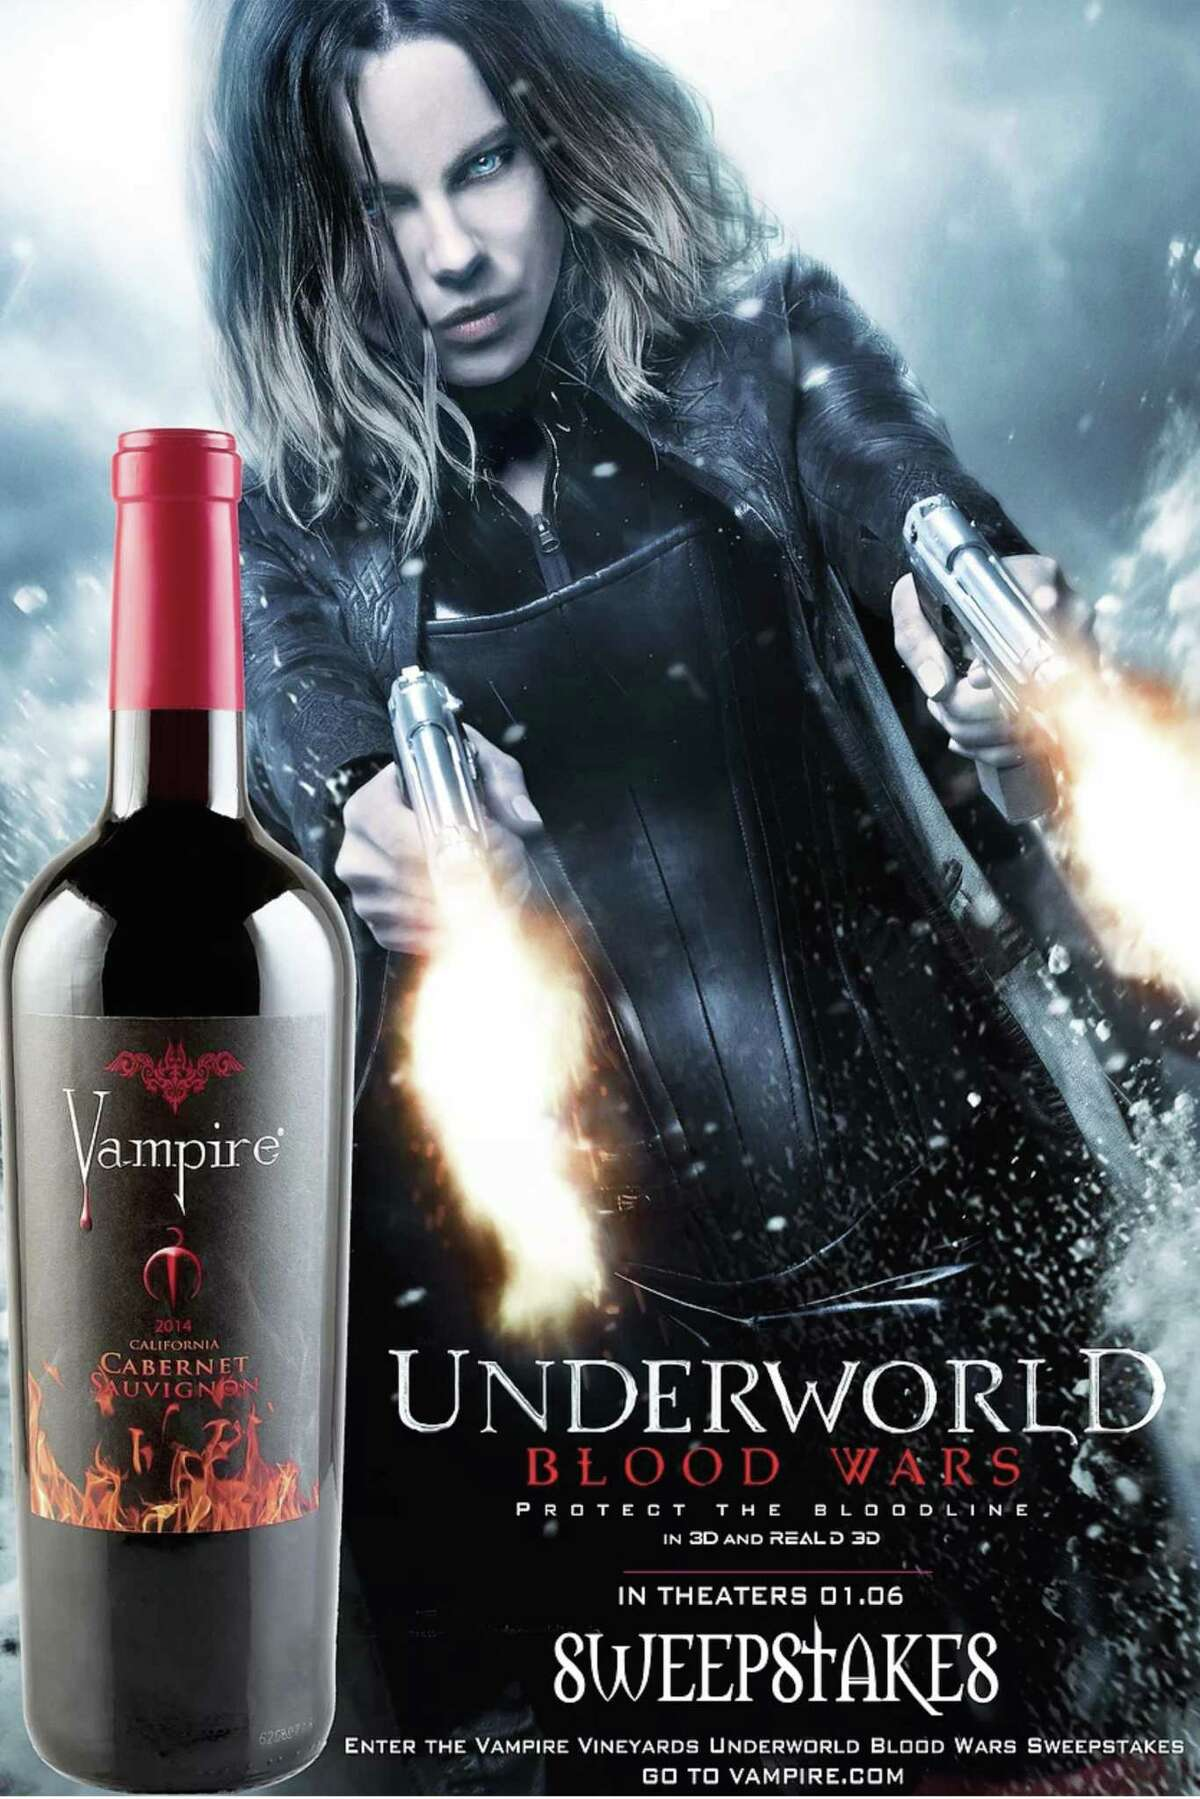 Los Angeles-based Vampire Family Brands LLC and Las Vegas-based Patco Brands are fighting over the latter?•s use the name Gran Agave Mix Vampiro, which is sold in H-E-B. Vampire Family Brands?• produces a variety of wines, include Vampire Cabernet Sauvignon.